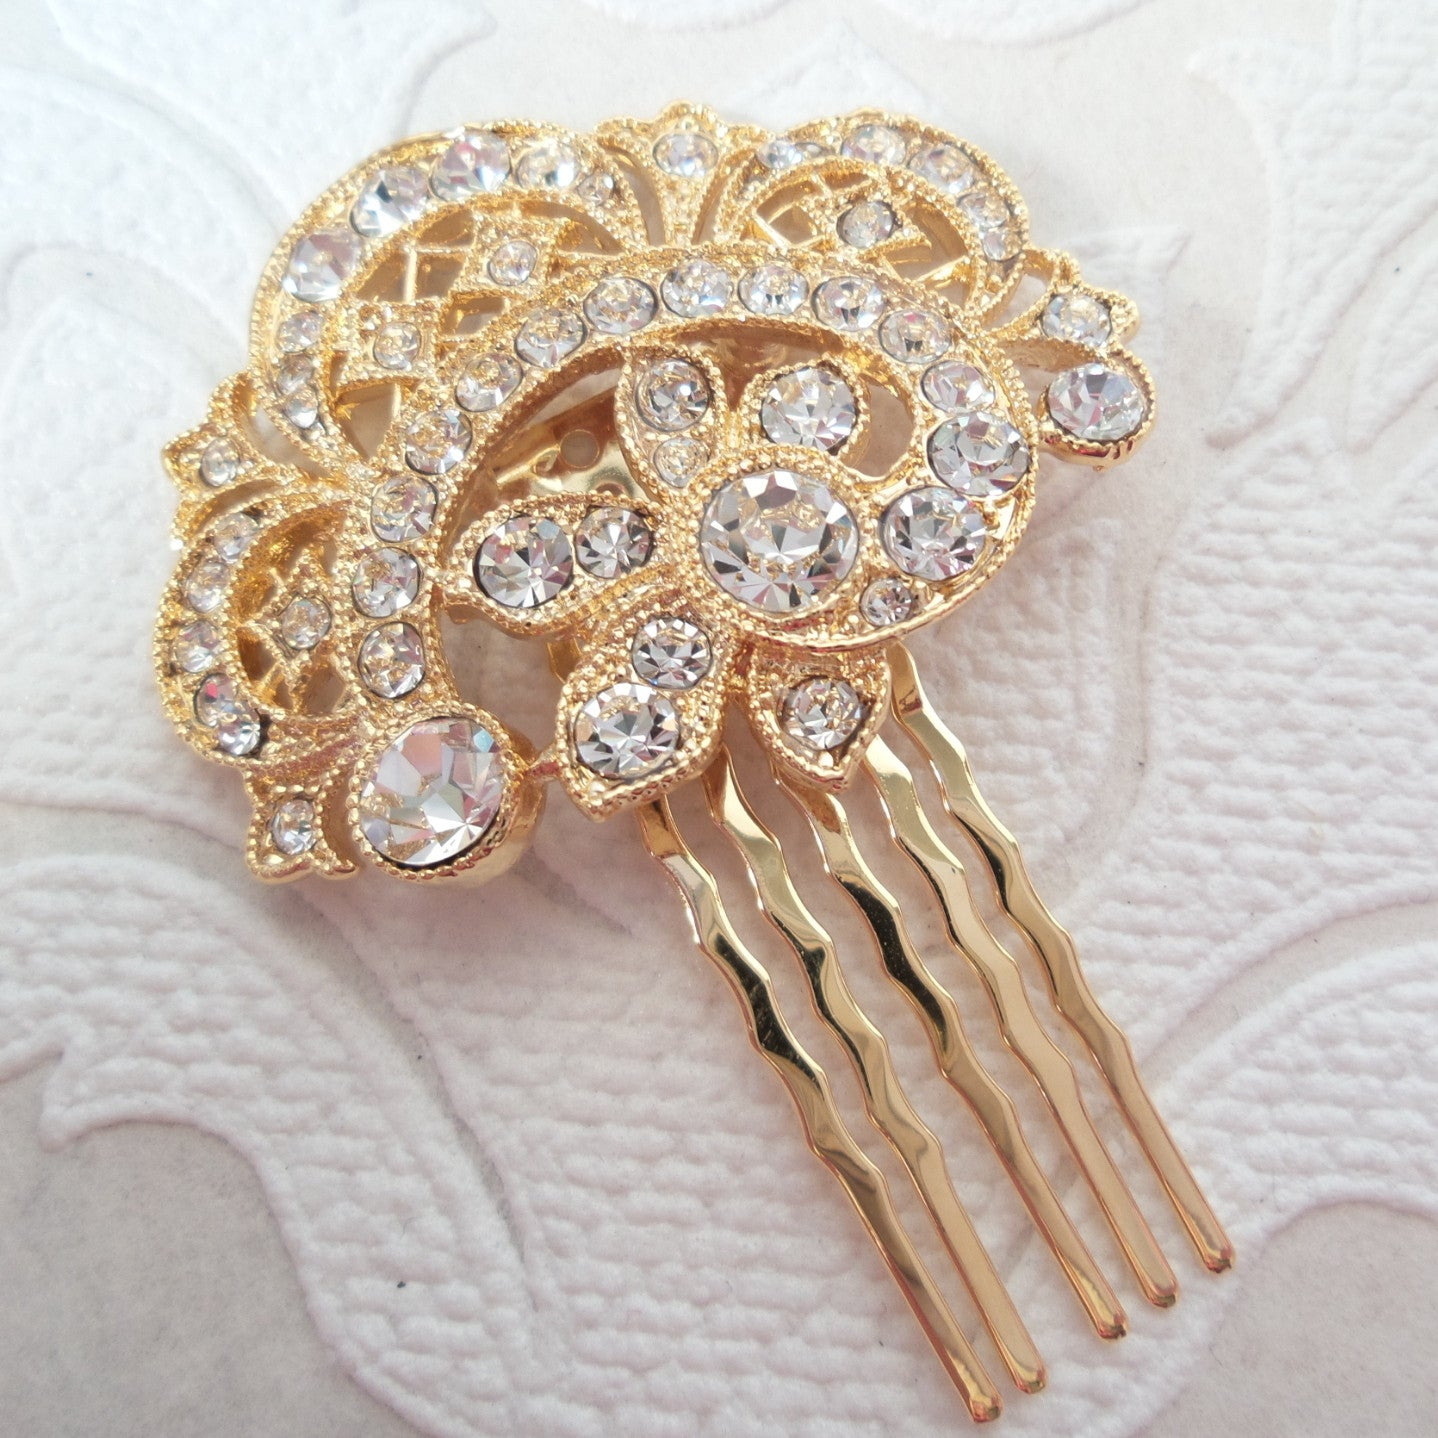 Victorian Swirl Wedding Hair Comb with Clear Swarovski Crystal Bridal Jewelry